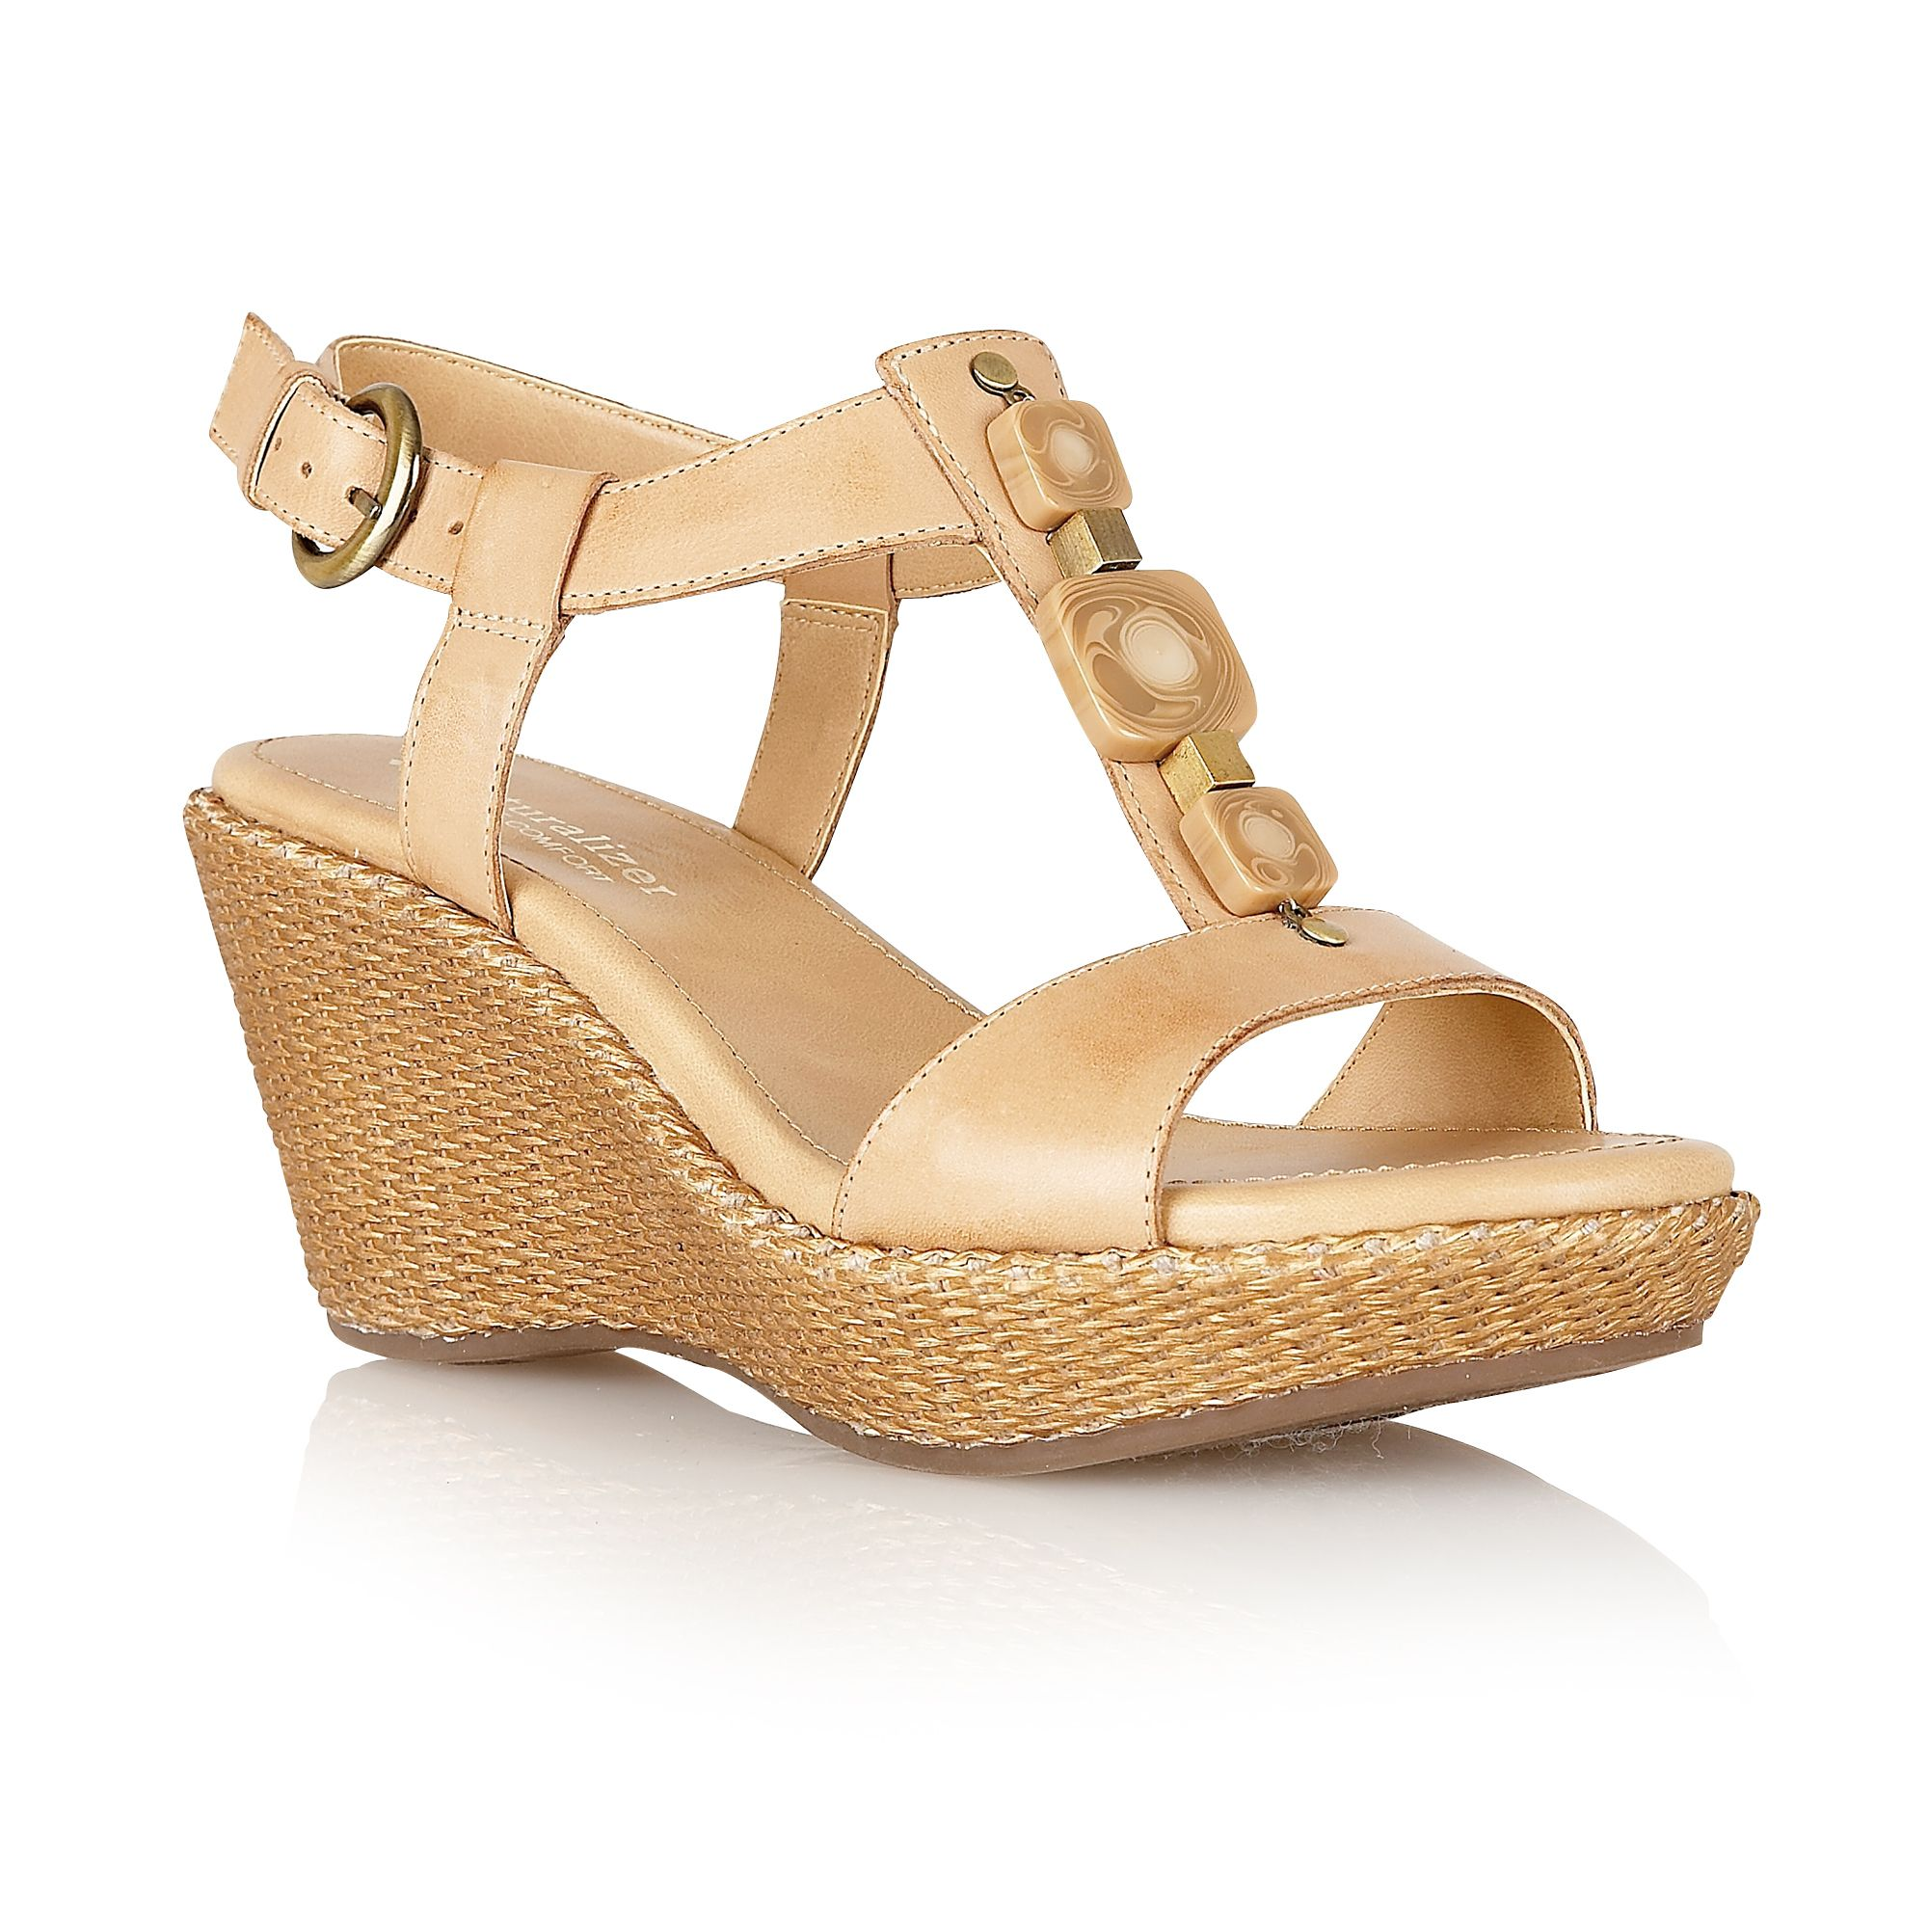 Naples casual sandals